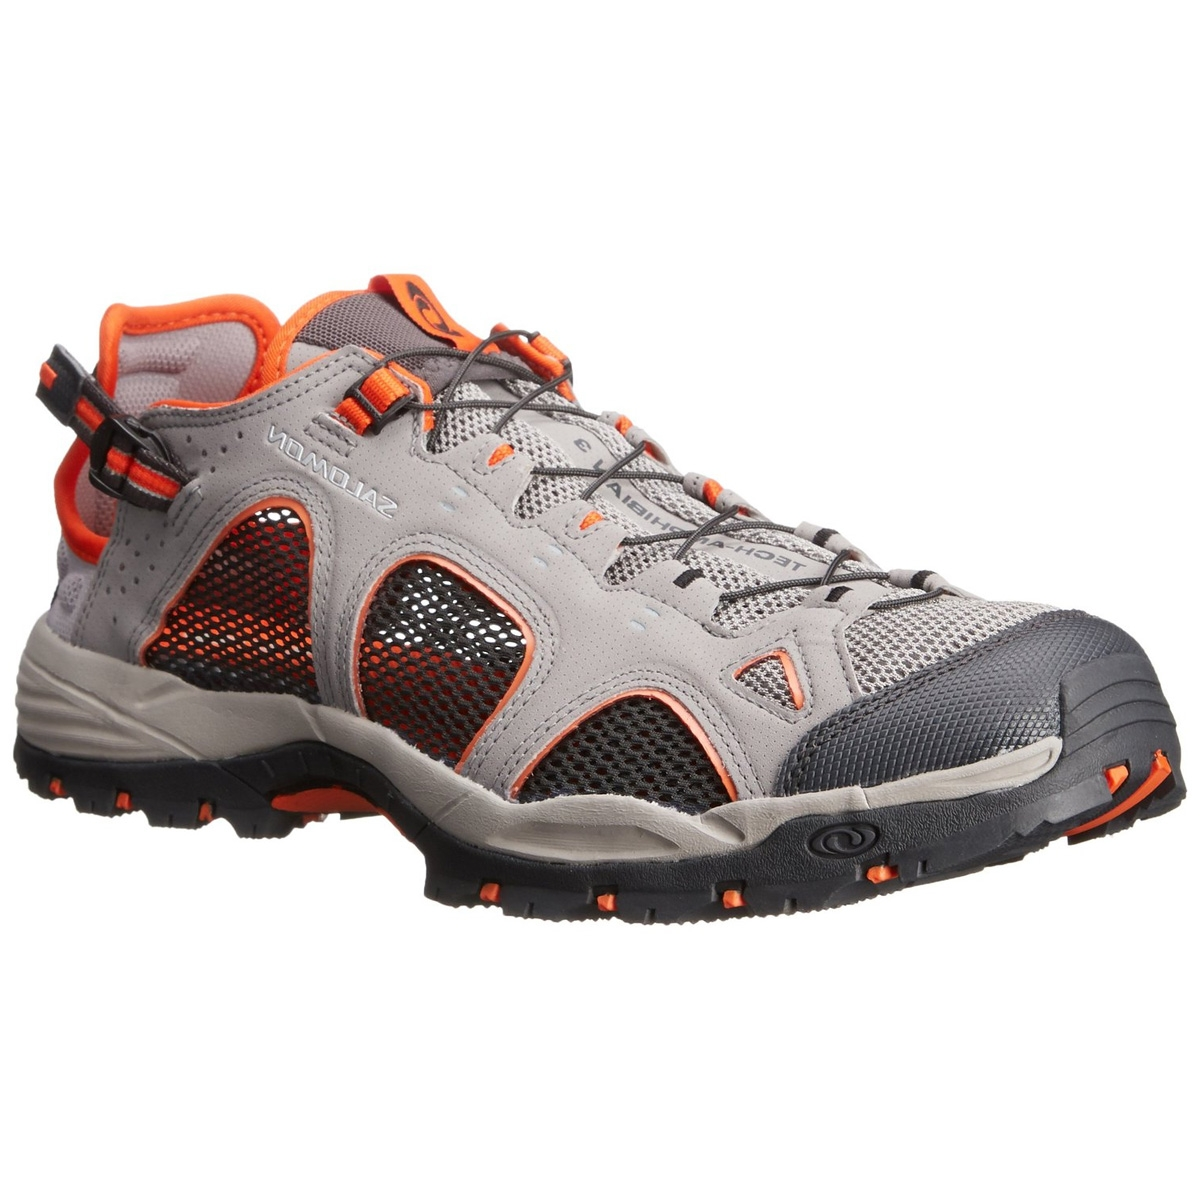 Salomon Techamphibian 3 Men moab orange fall orange black